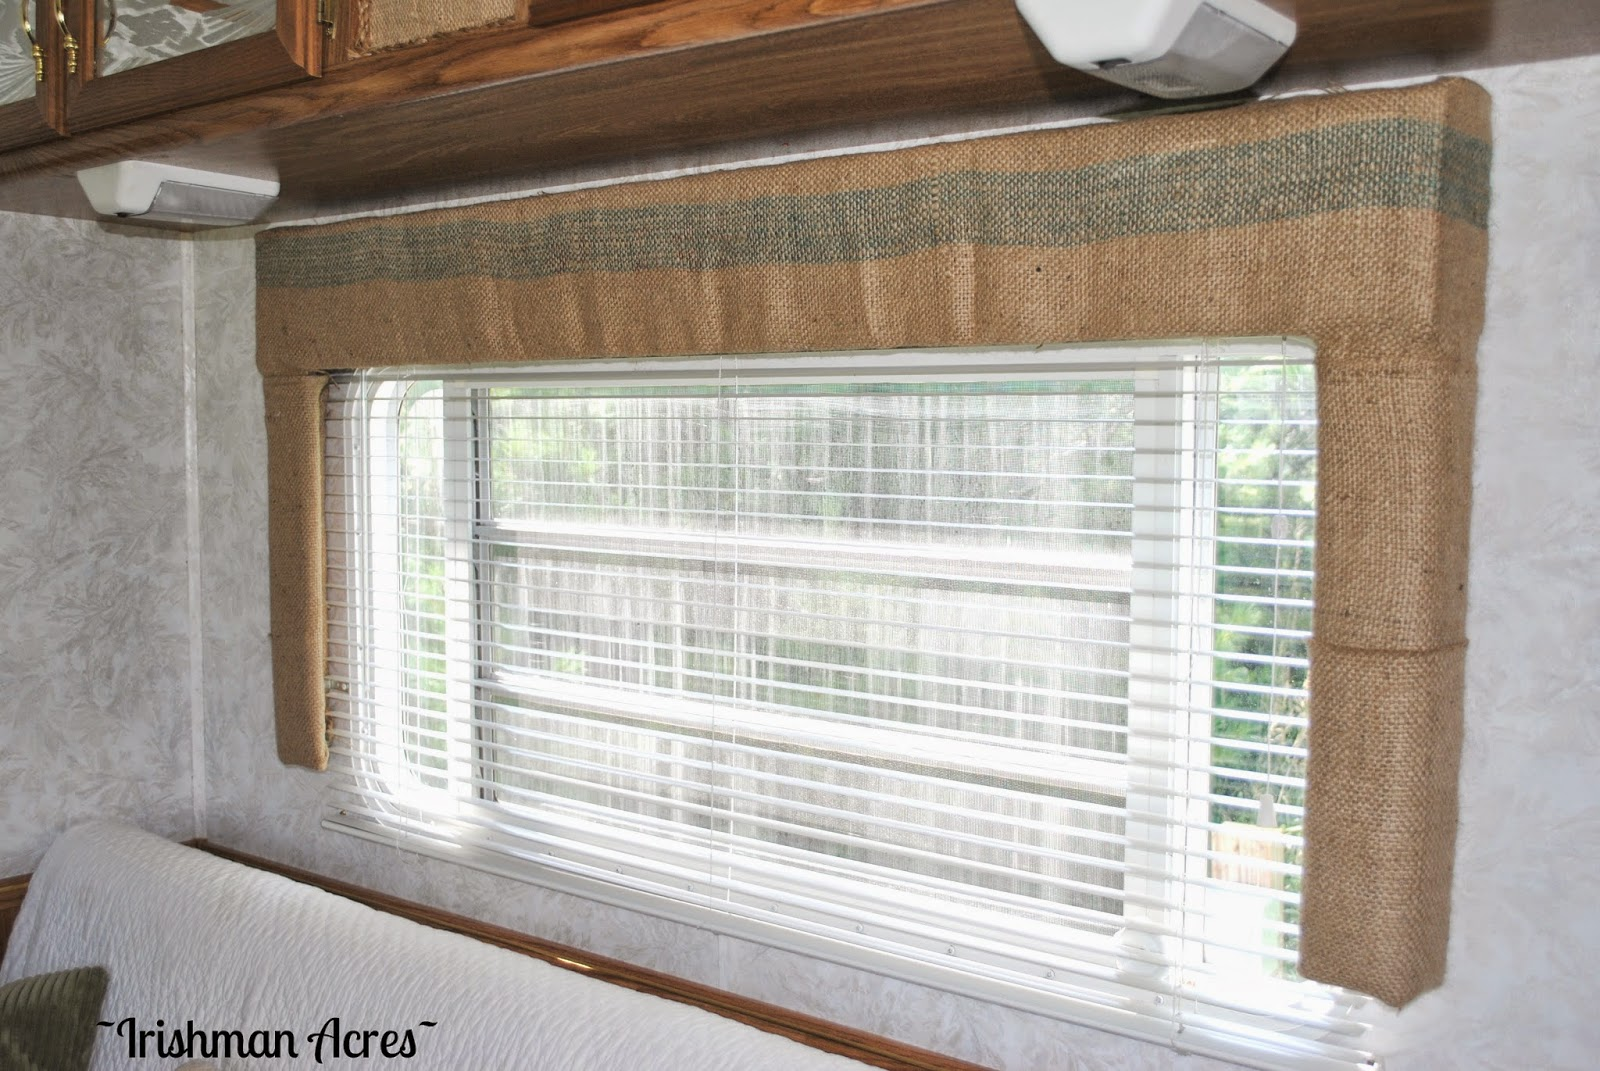 Camper window treatments - I Had Quite The Growing Collection Of These And After Getting Over The Initial Shock Of Cutting One Up I Love The Look It Adds To The Windows